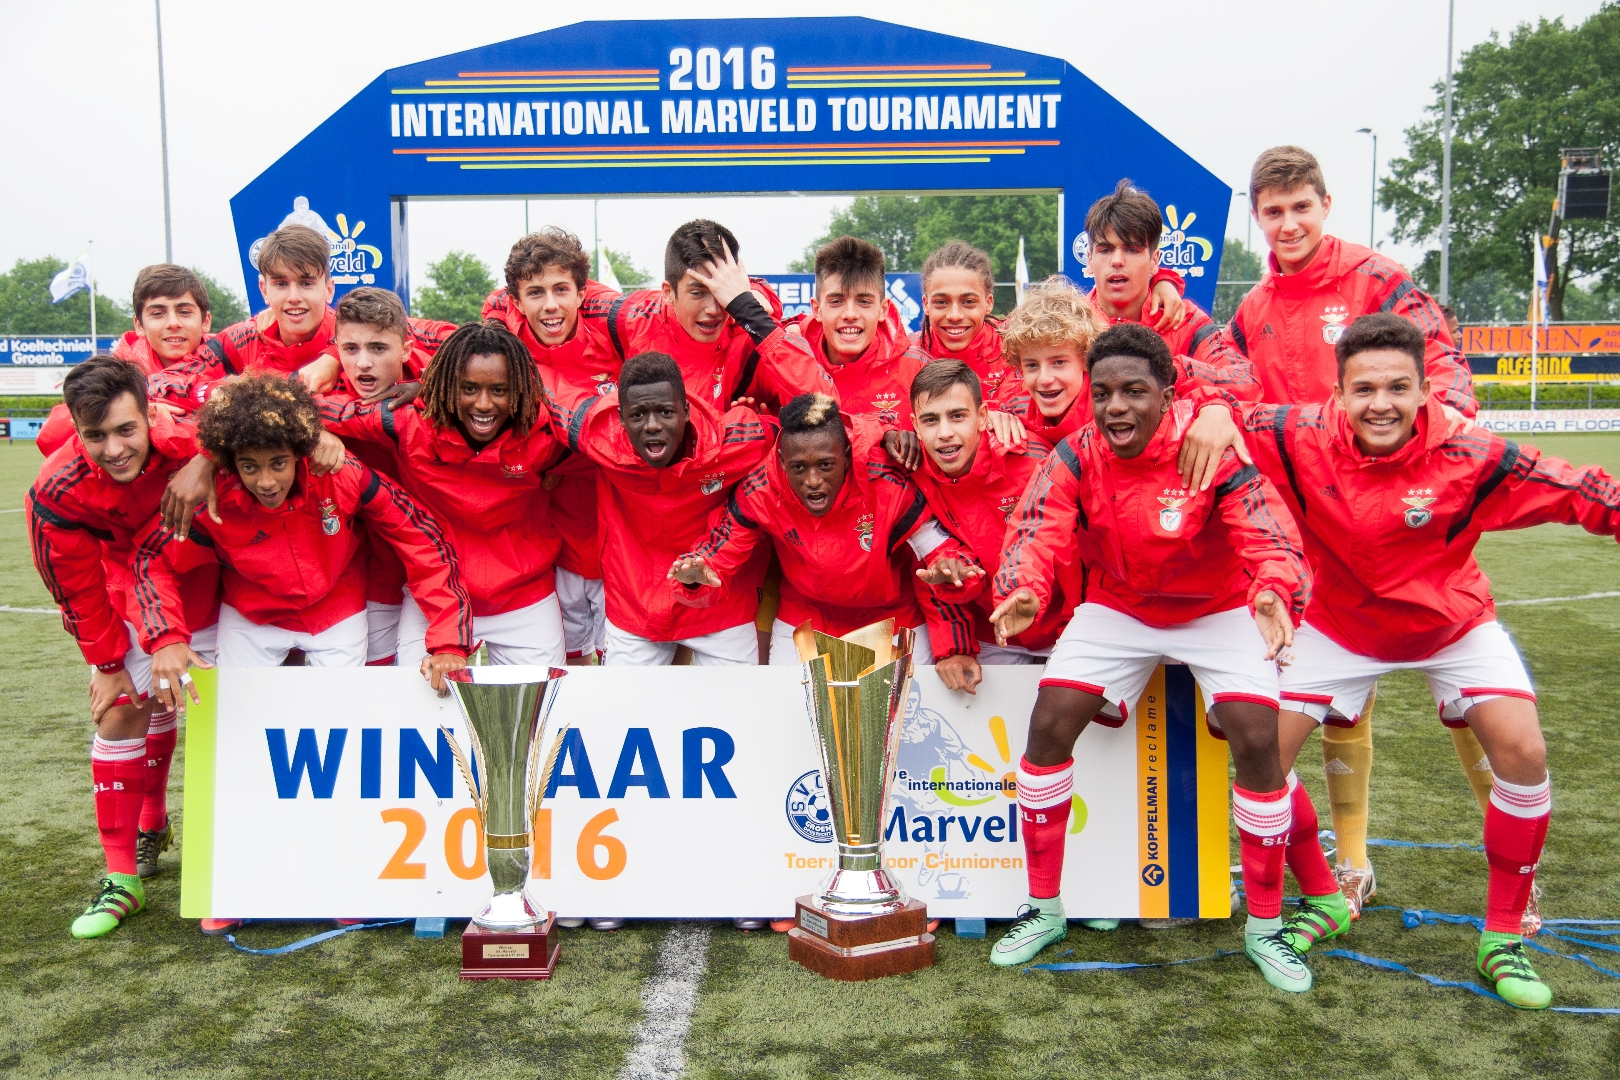 Marveld Tournament 2016 - Winners SL Benfica